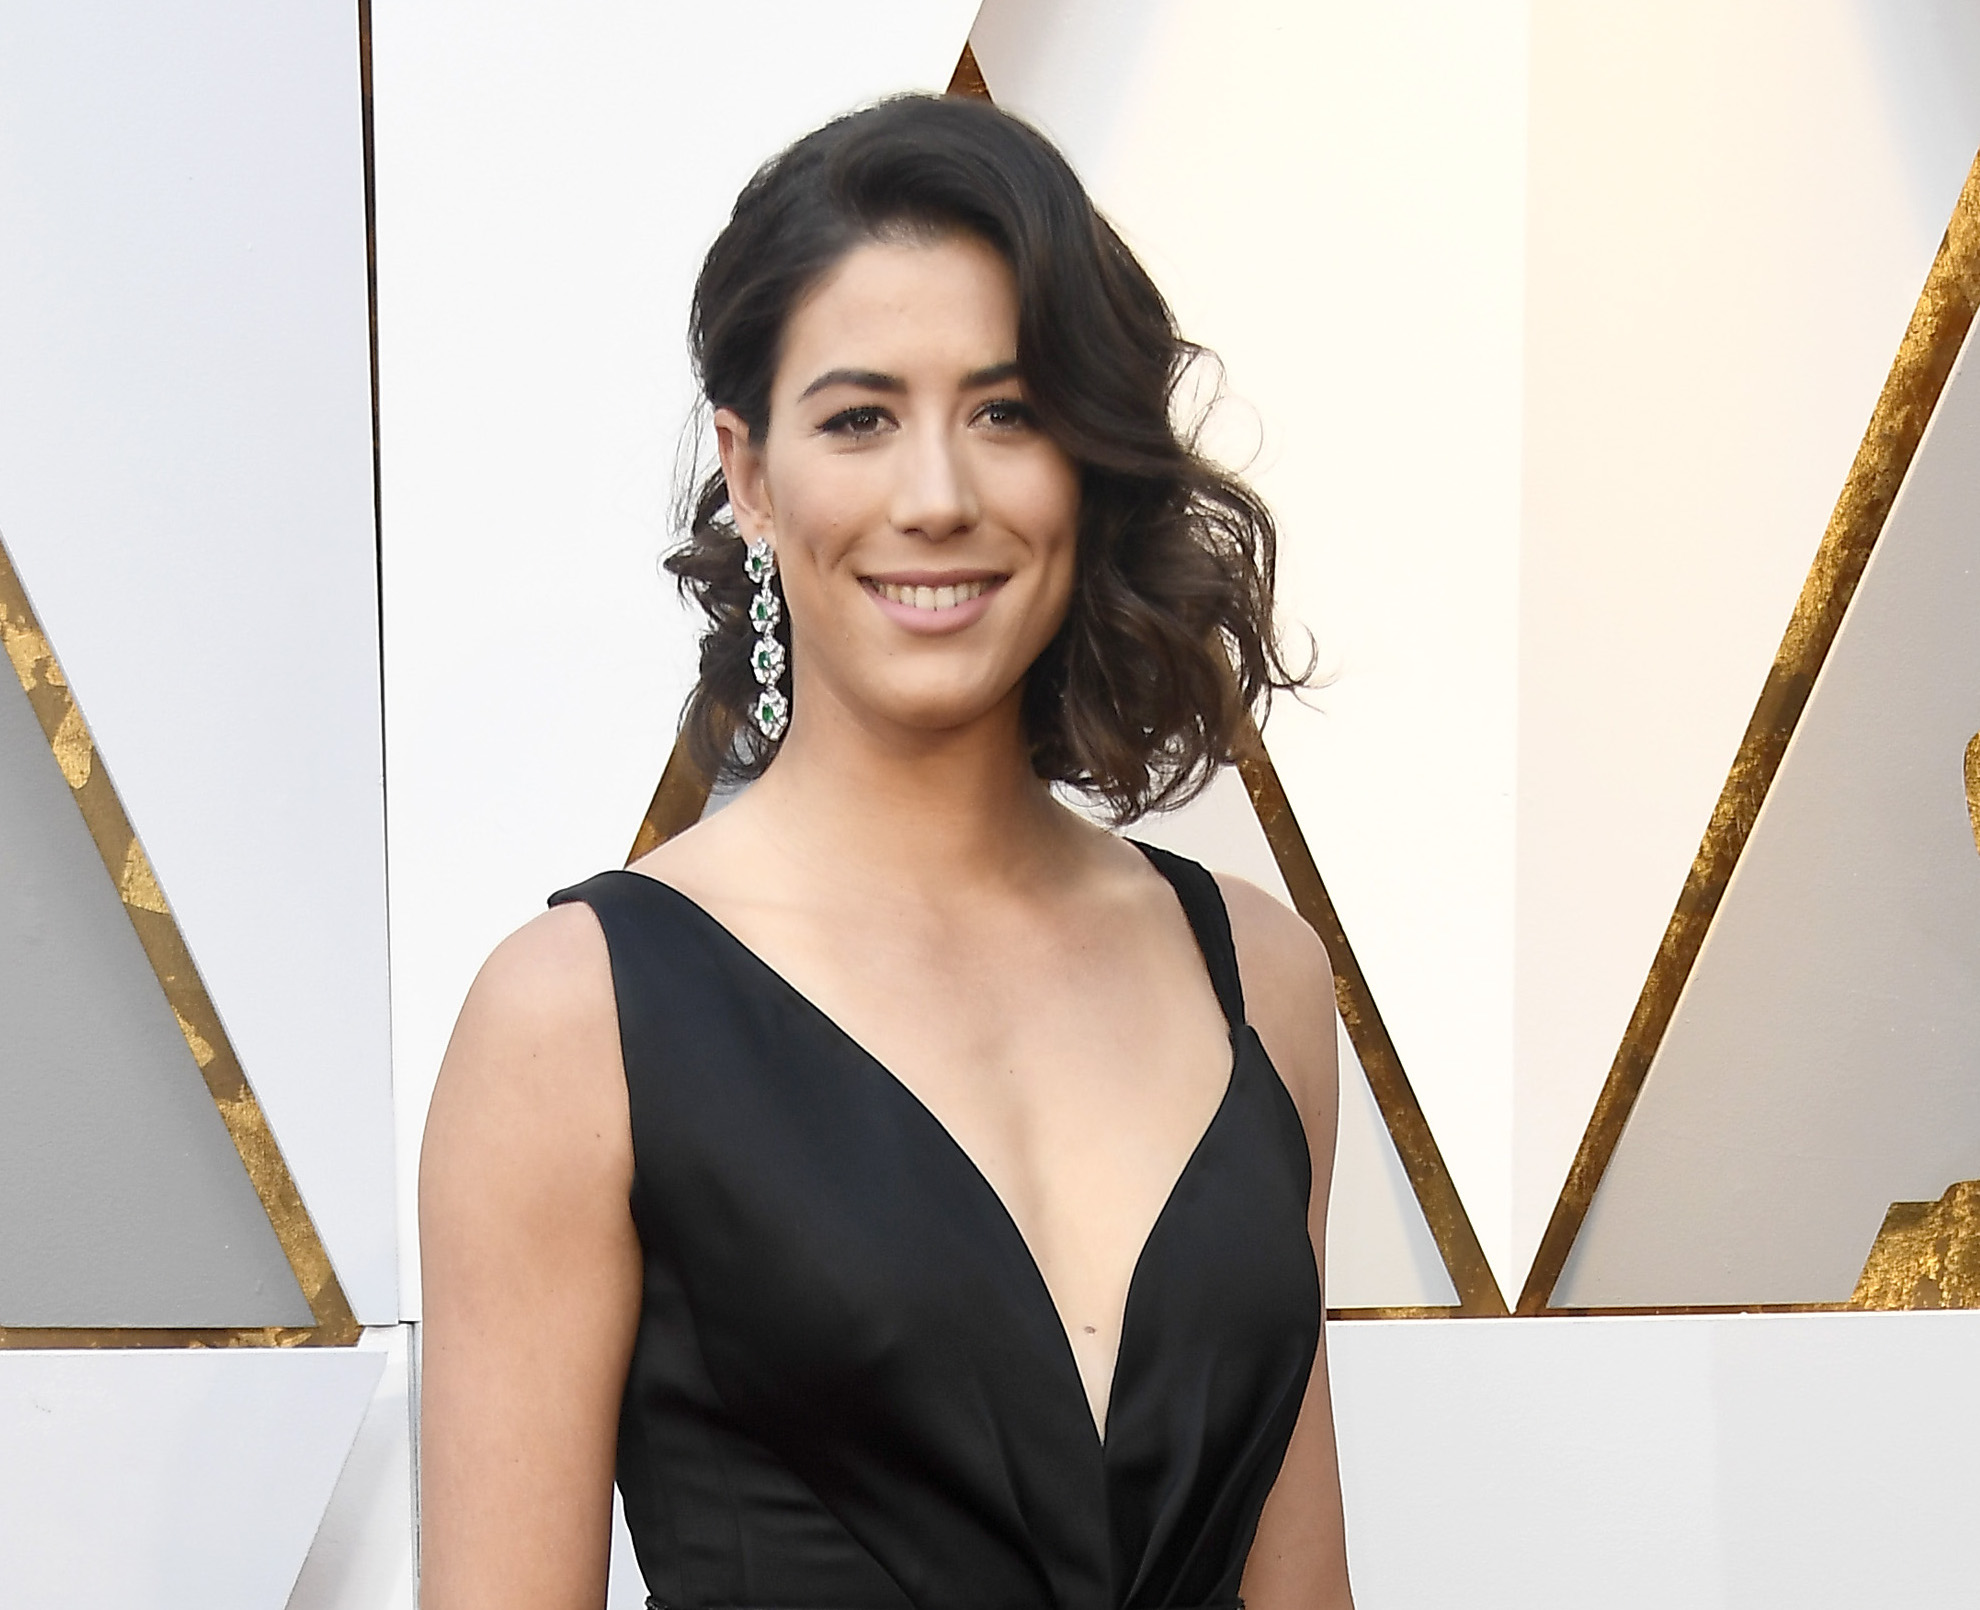 Twitter Alfombra Roja Who Is Garbiñe Muguruza The Sports Champion At The 2018 Oscars